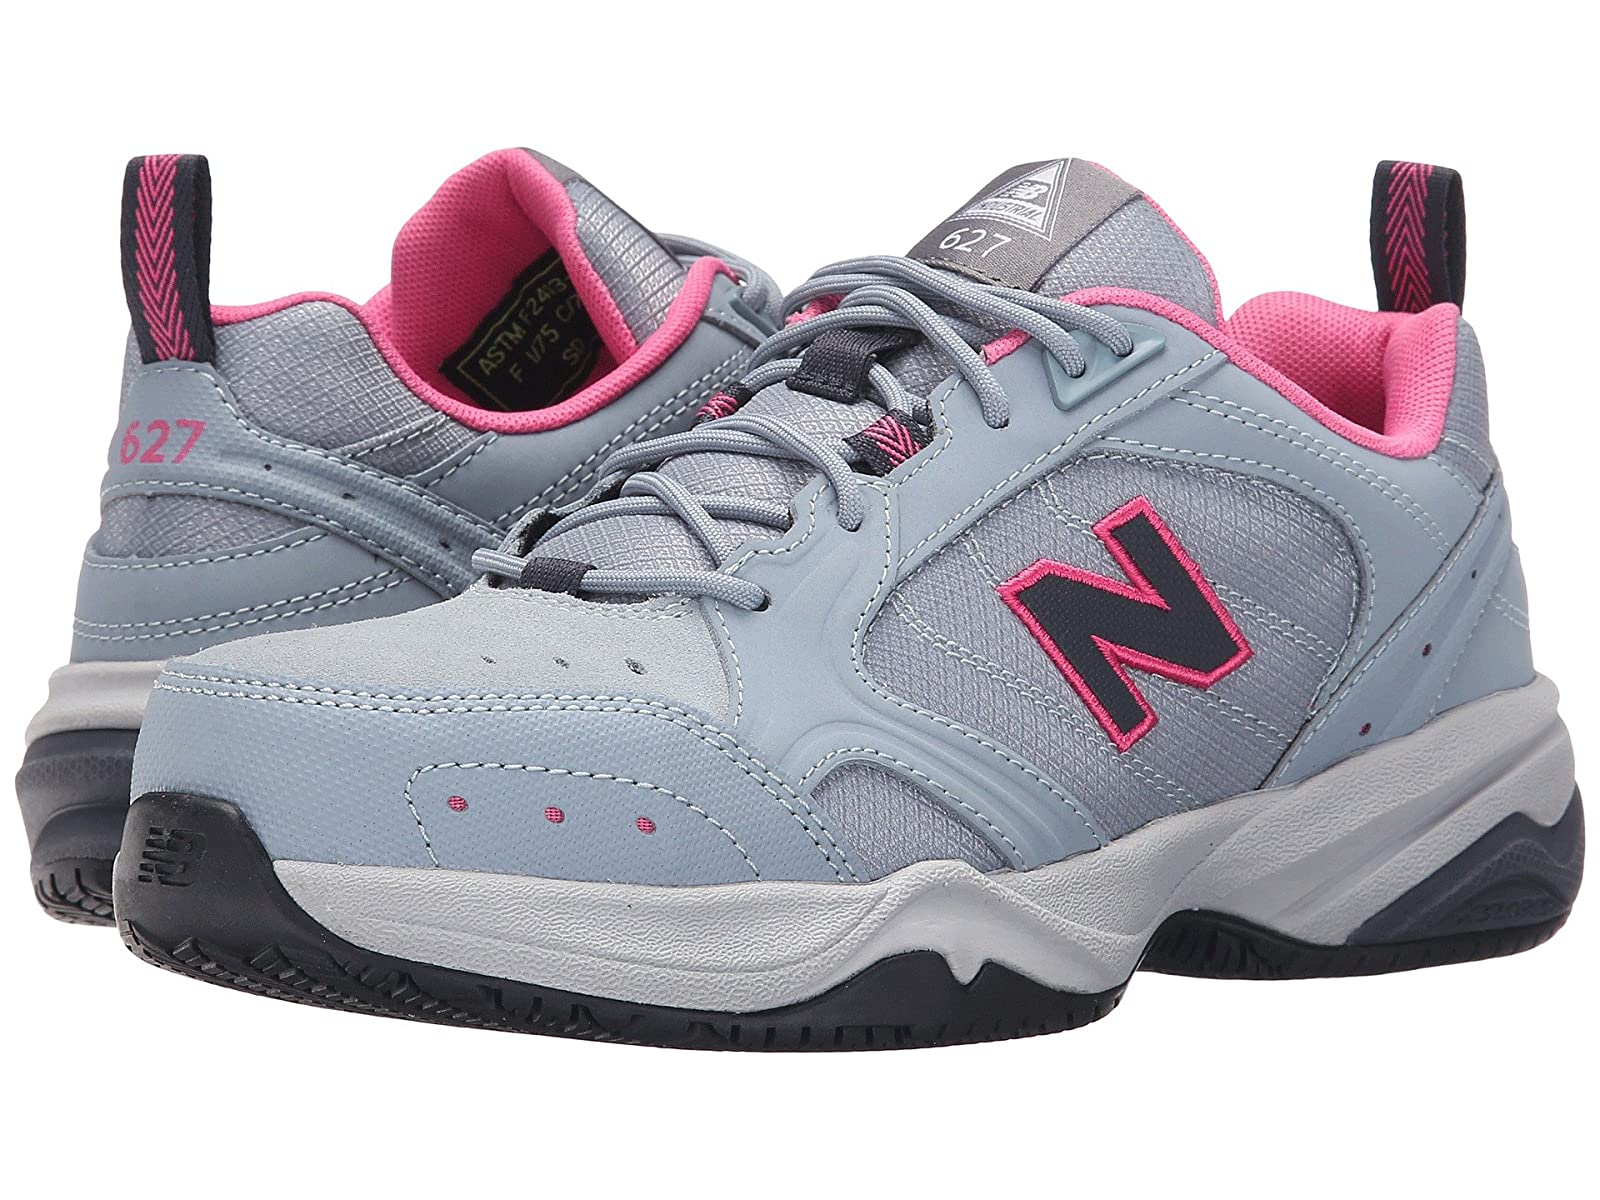 New Balance WID627Cheap and distinctive eye-catching shoes